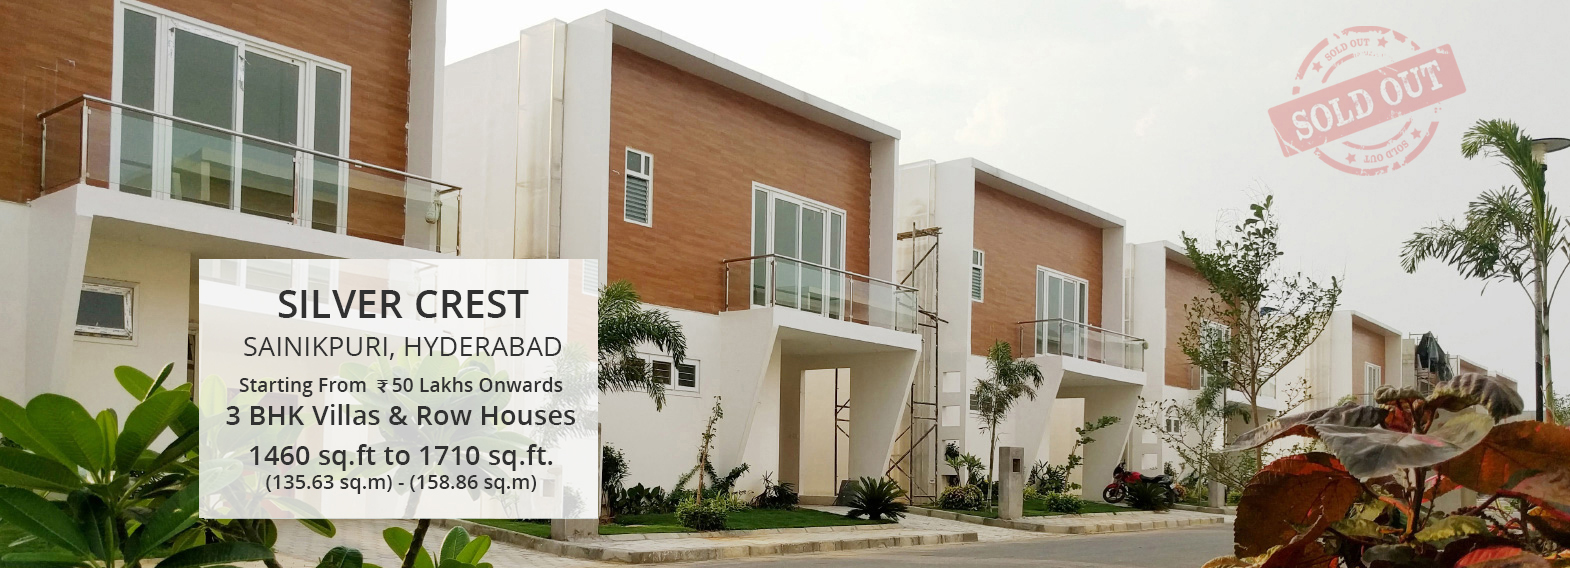 Villas for sale in sainikpuri independent villas for sale for Terraced house meaning